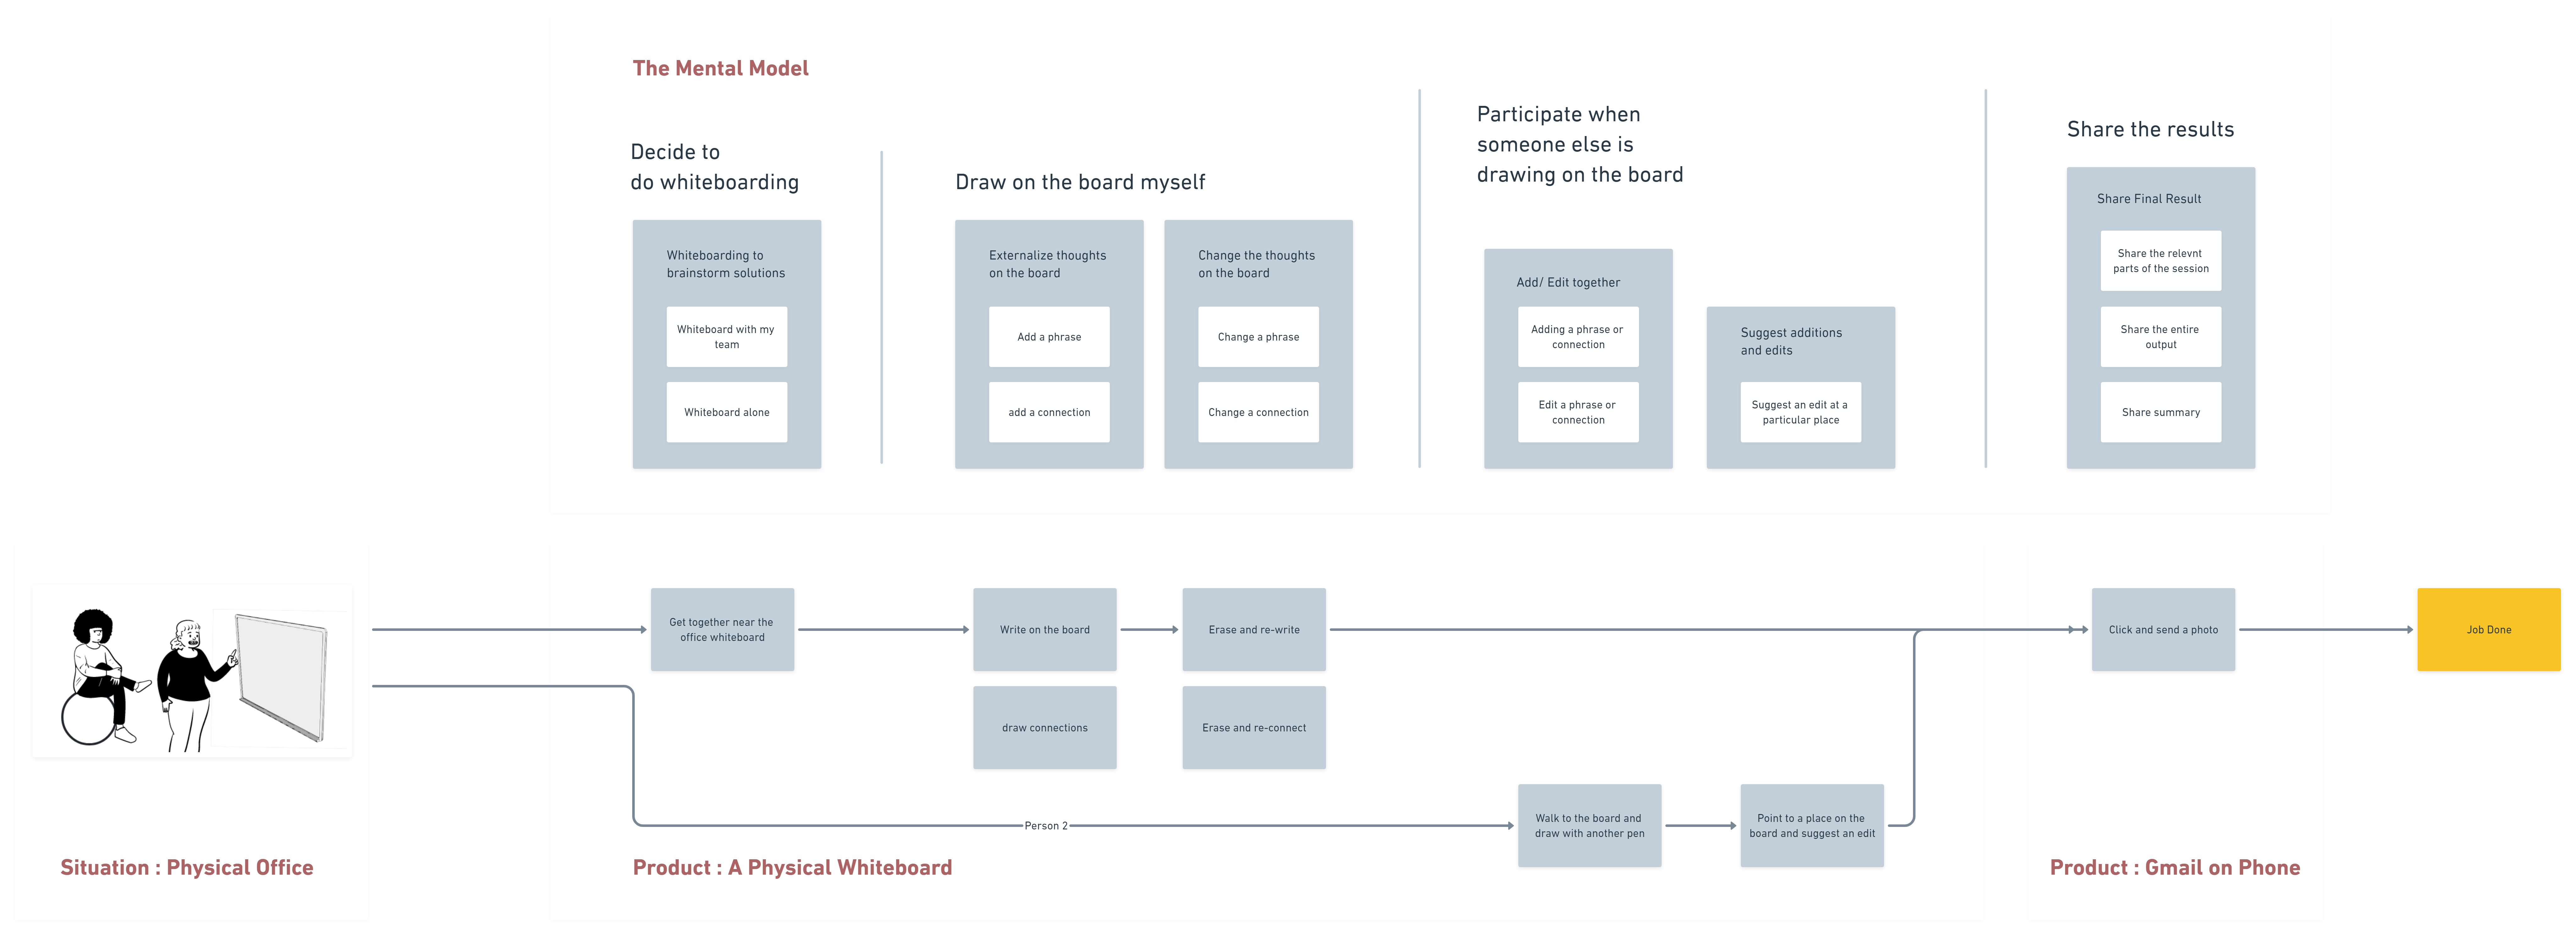 Mental Model (a tool used by UX designers) used to analyze the whiteboarding process